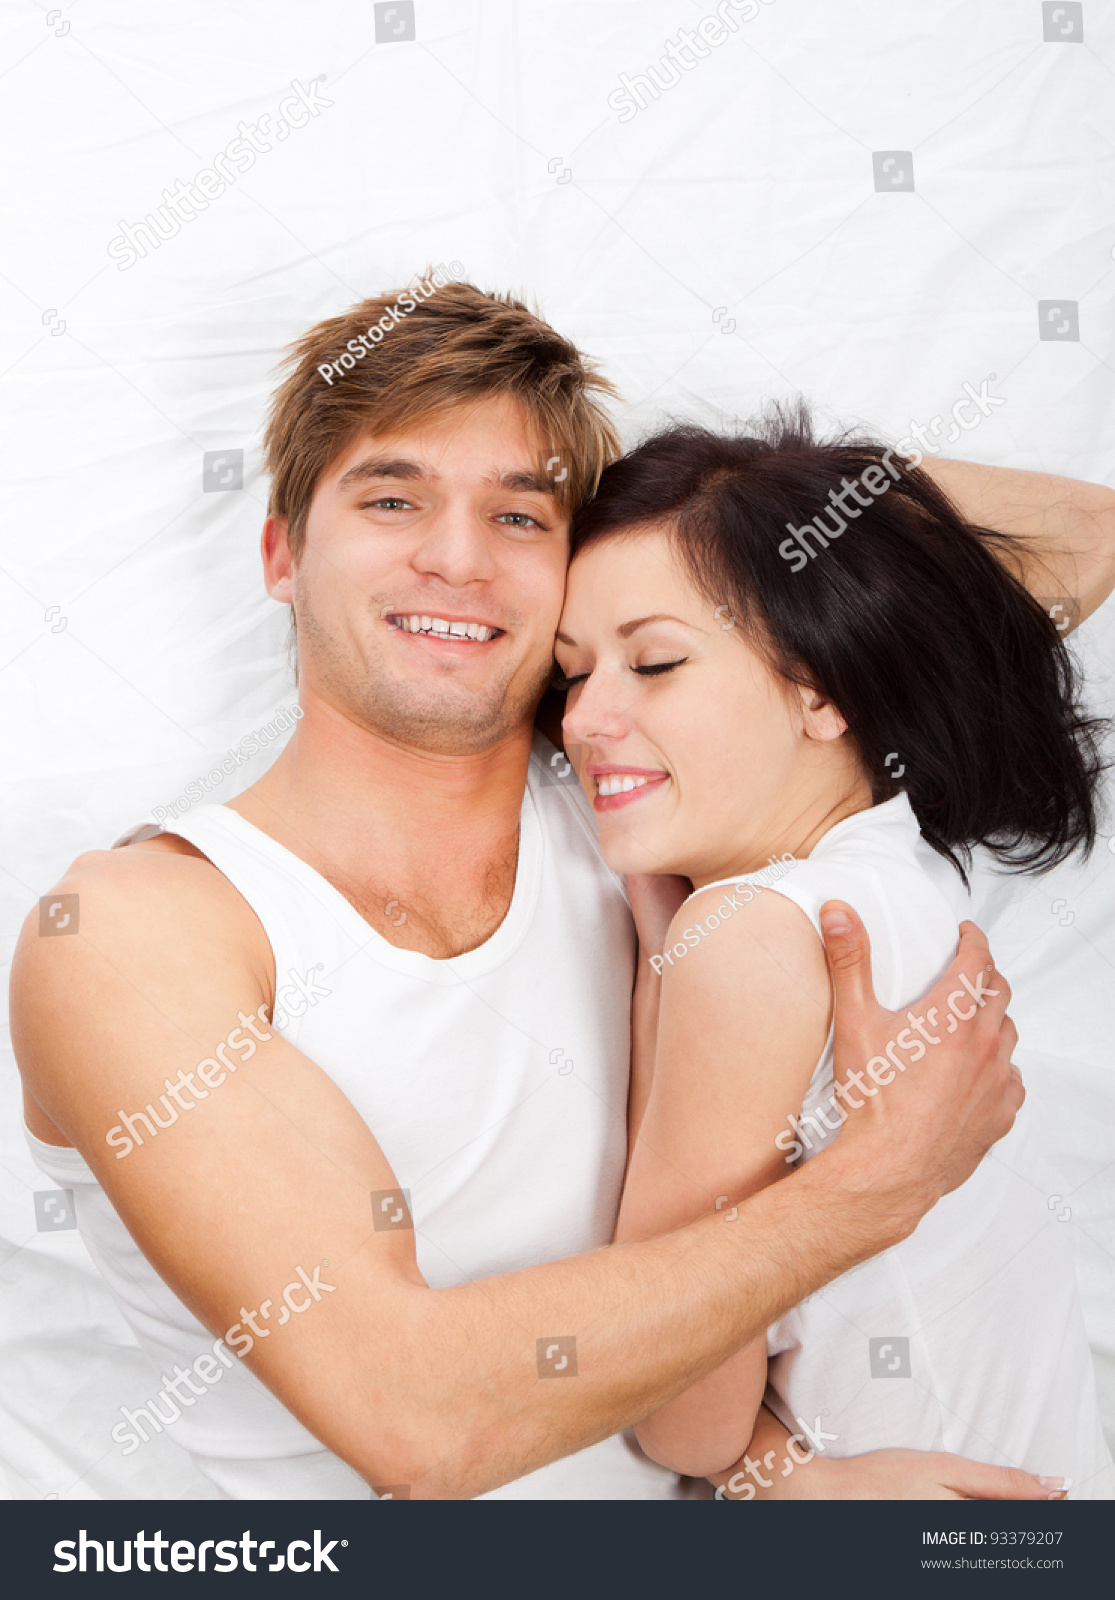 Lovely Couple In Bed Lying In Bedroom Young Lovely Couple Lying Bed Hug Stock Photo 93379207 Shutterstock